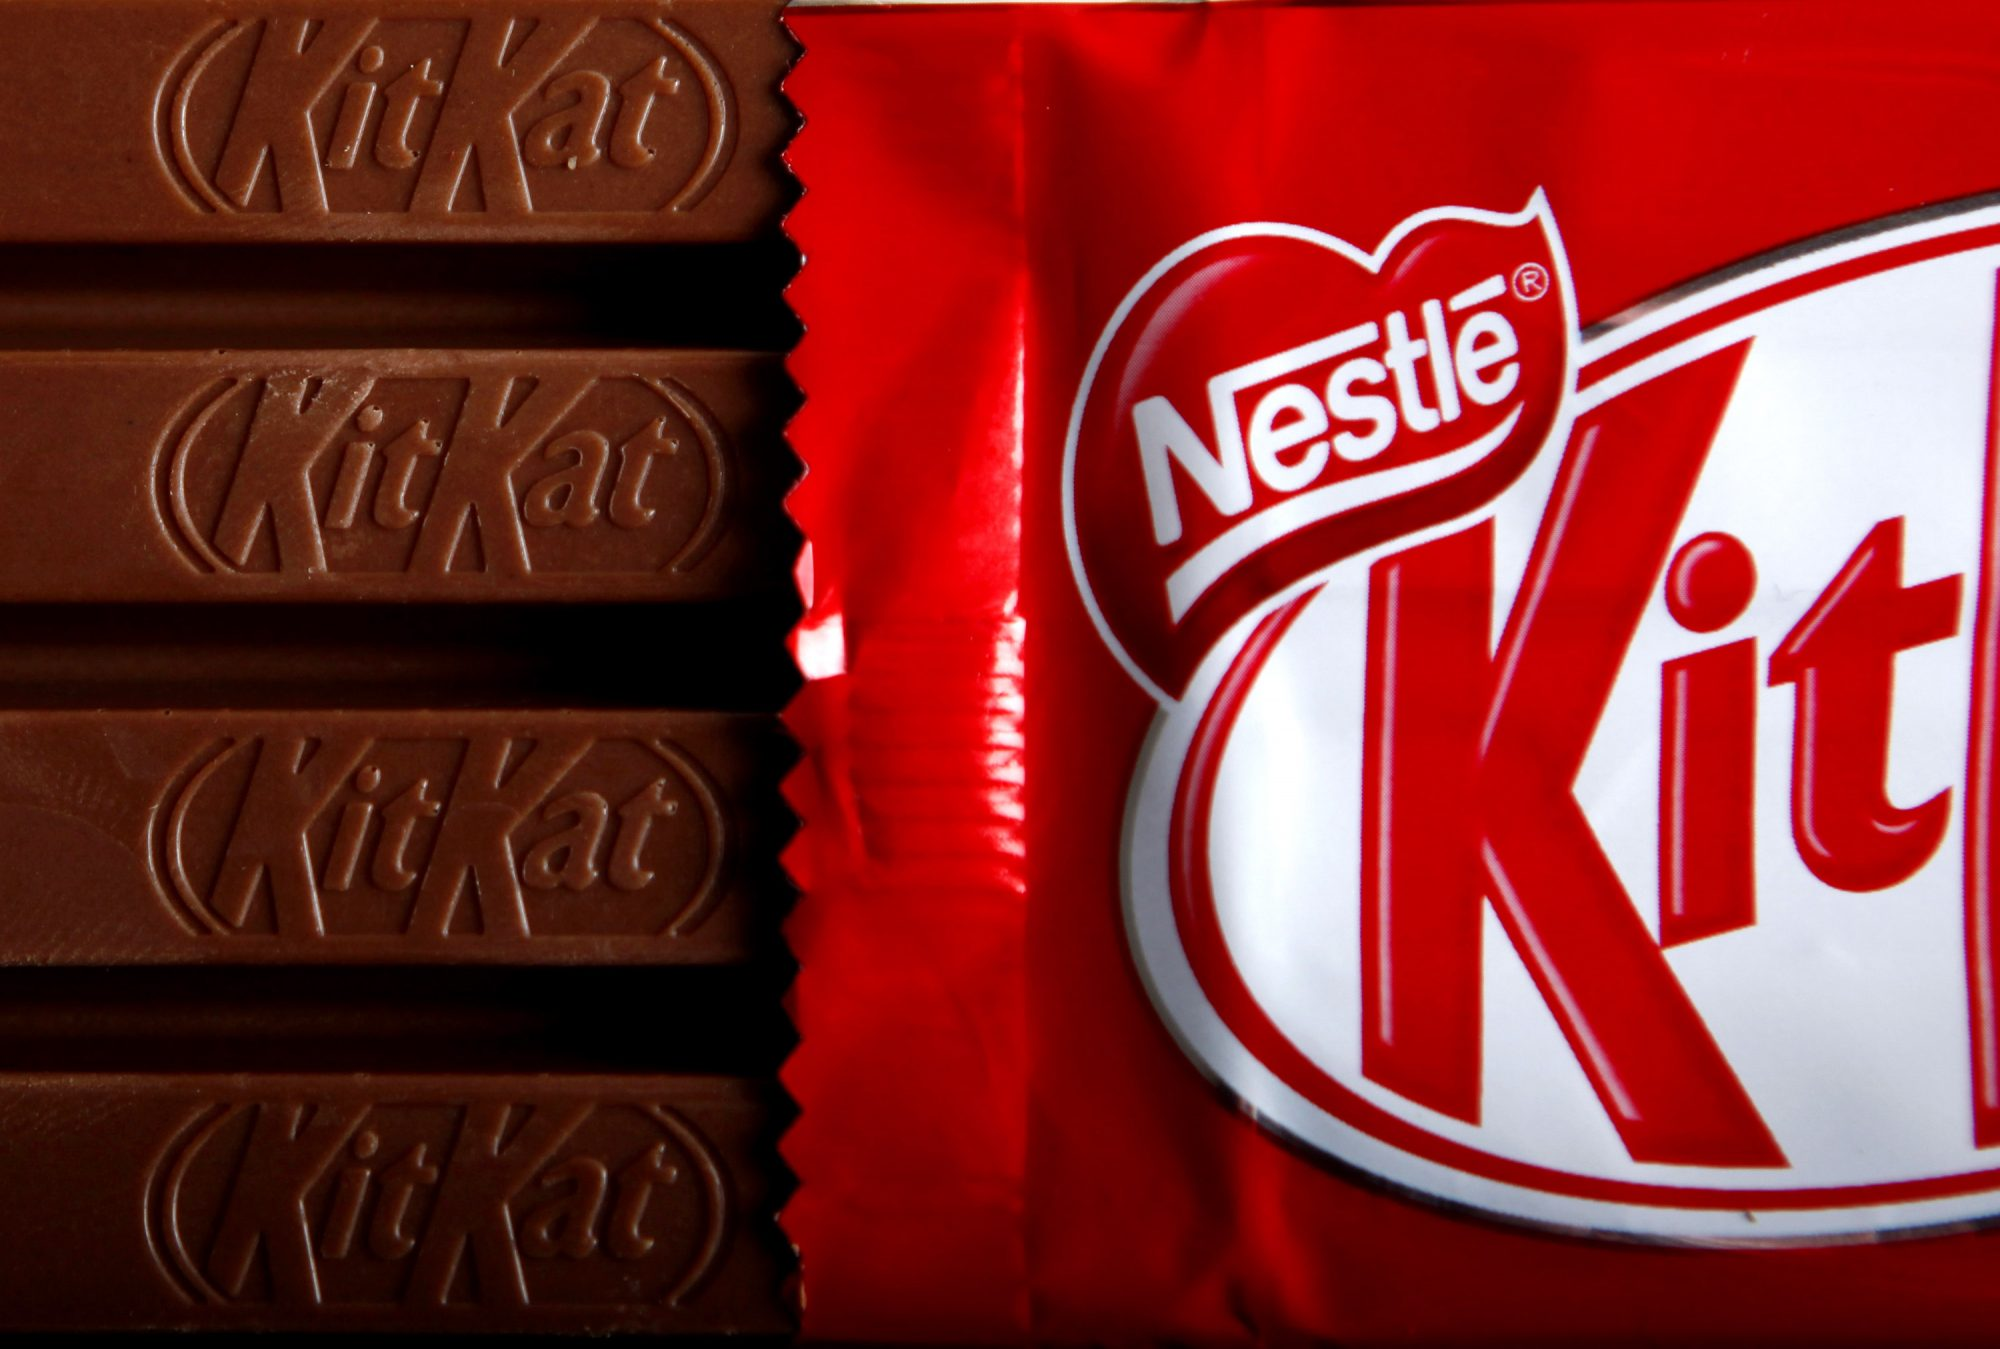 Bars of original KitKat chocolate, produced by Nestle SA, and without the fair-trade logo sit arranged for a photograph in London, U.K., on Monday, Dec.7, 2009. Nestle SA, the world's biggest food company, will start certifying some KitKat bars in the U.K